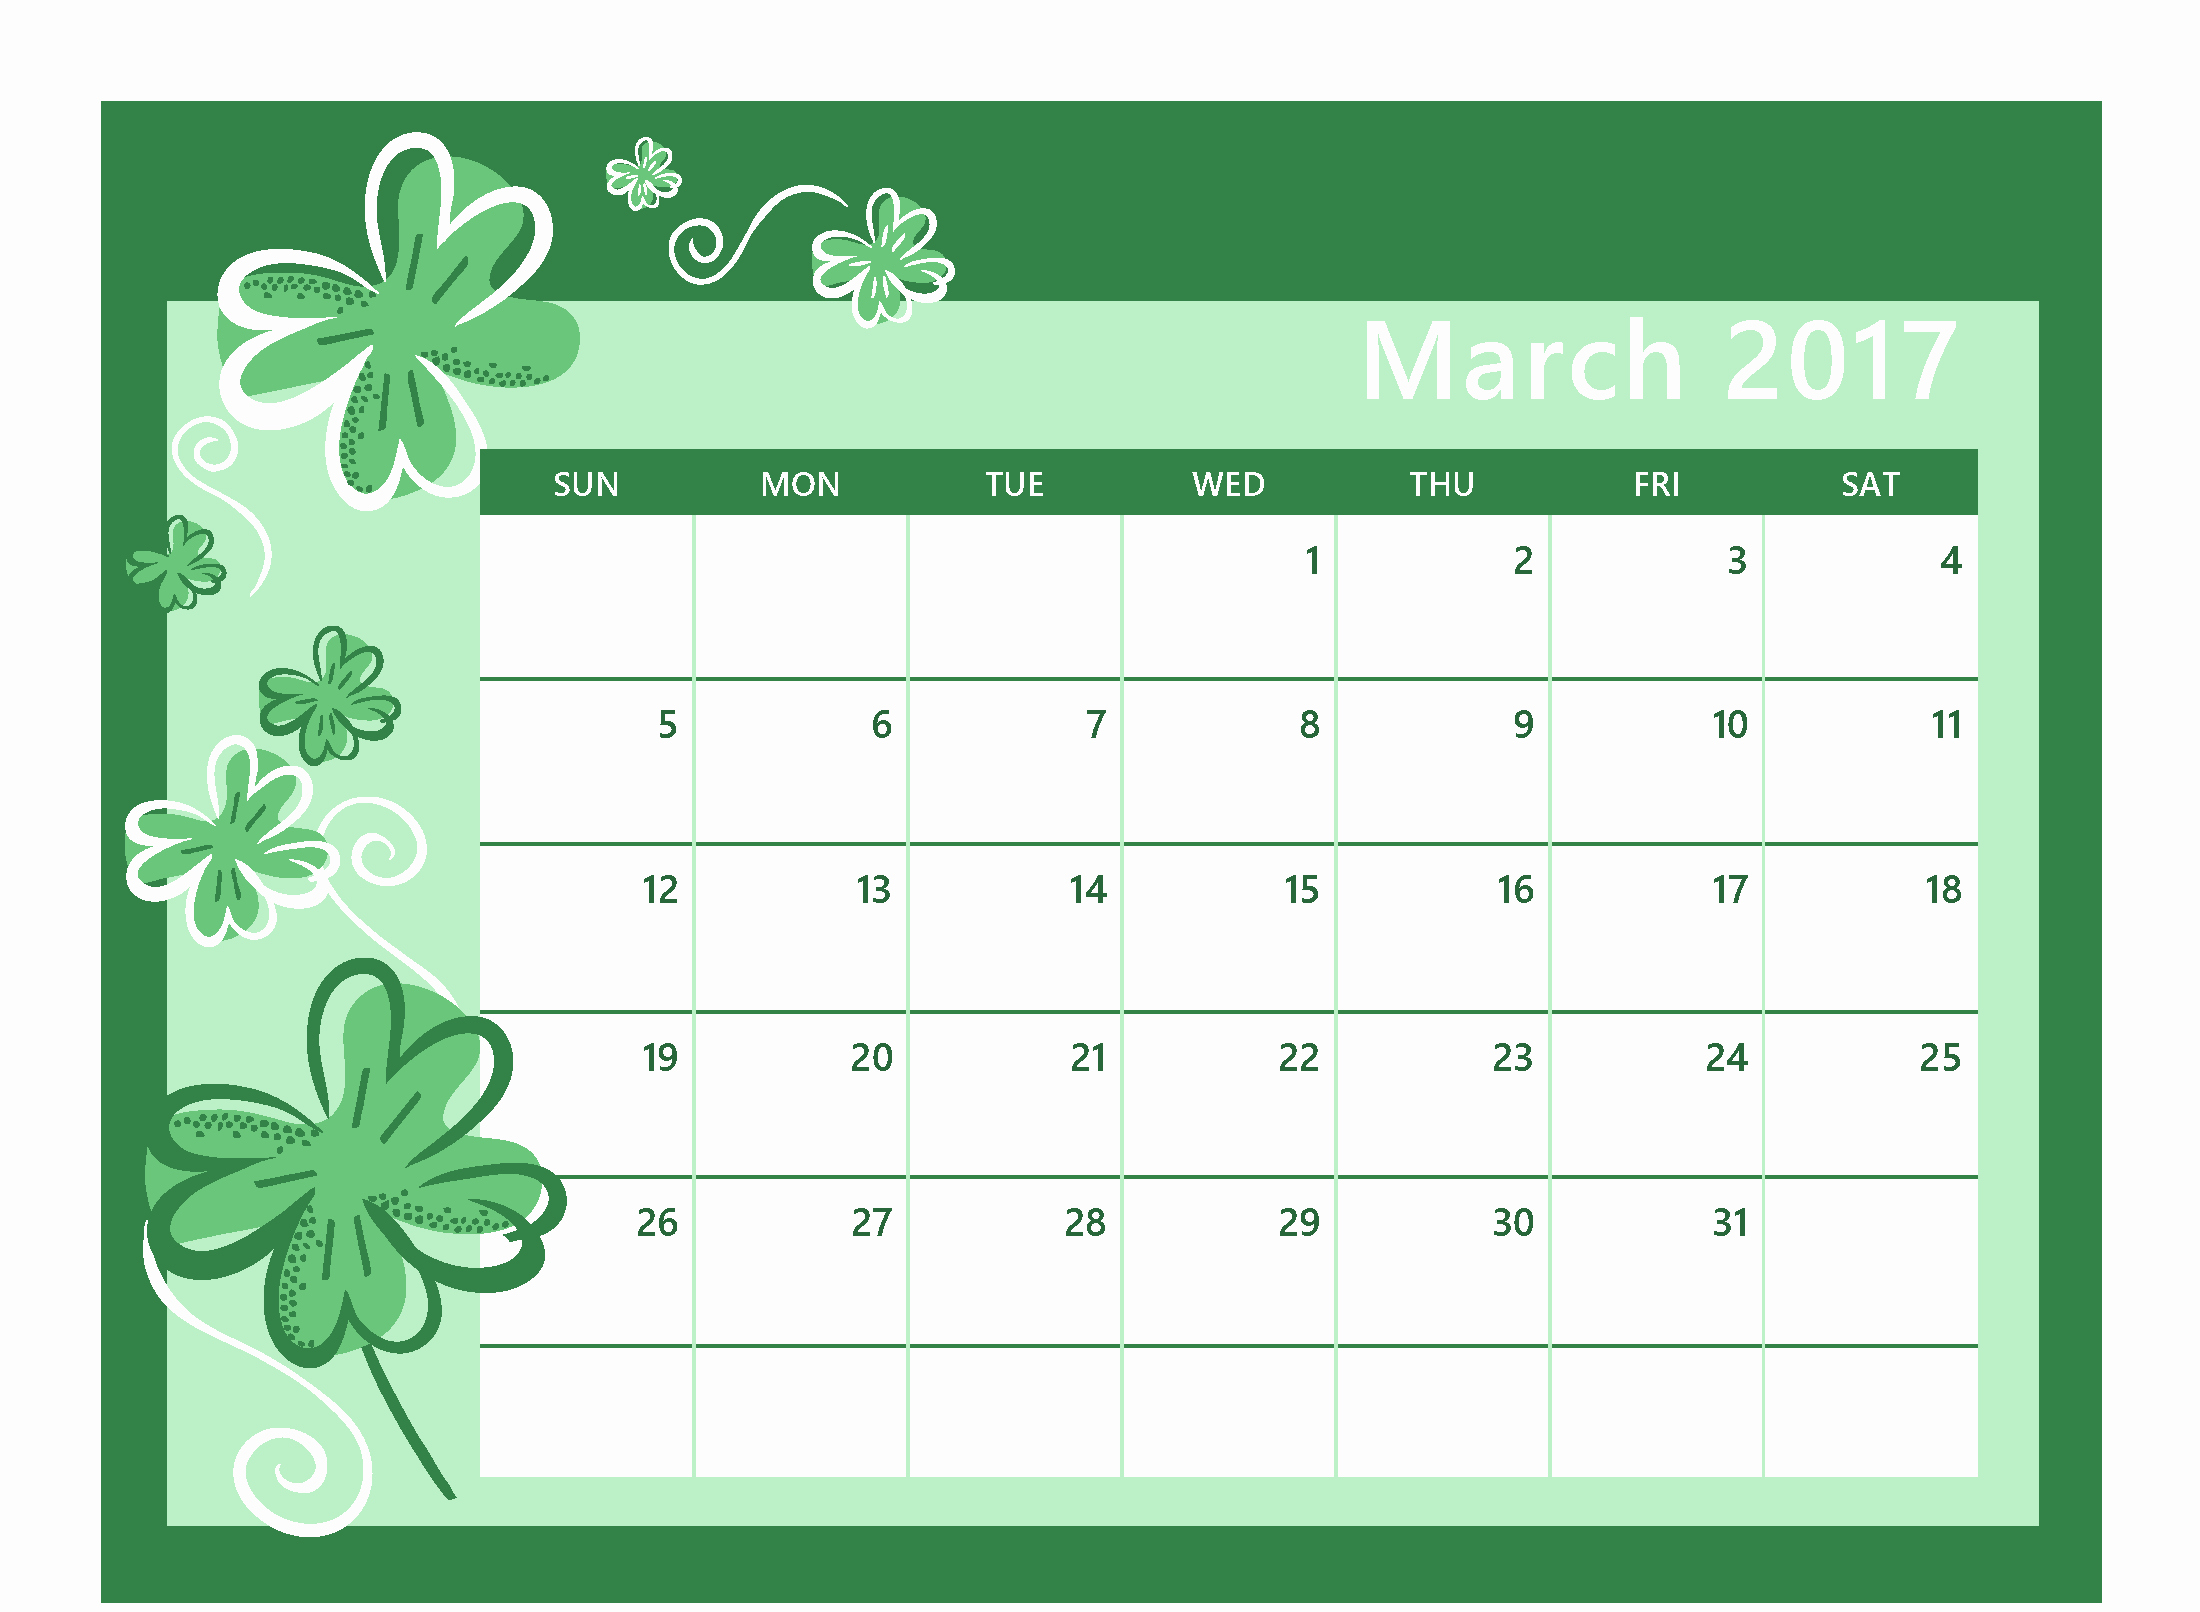 Excel 2017 Calendar with Holidays Awesome Calendar March 2017 Excel Calendar and